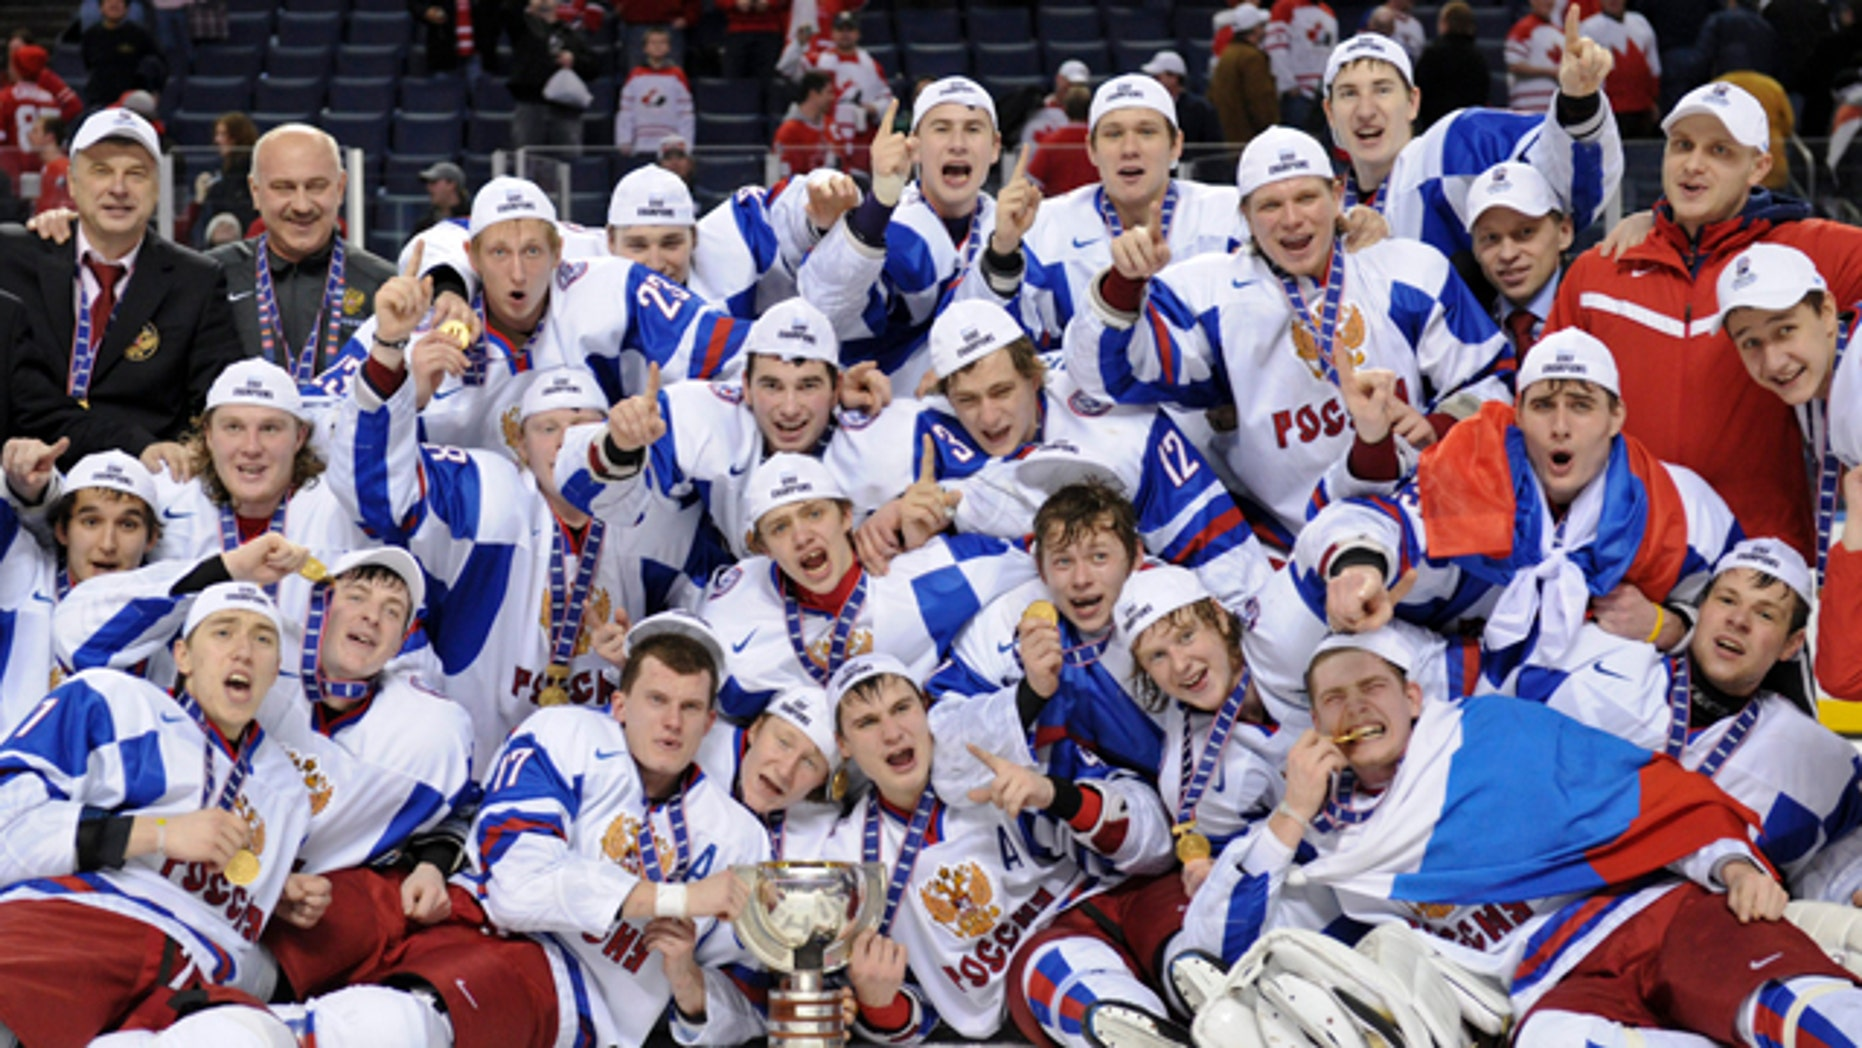 Jan. 5: Members of Team Russia pose for a group photo with their gold medal following their 5-3 victory over Team Canada in the IIHF World Junior Championship gold medal final hockey action in Buffalo, N.Y.